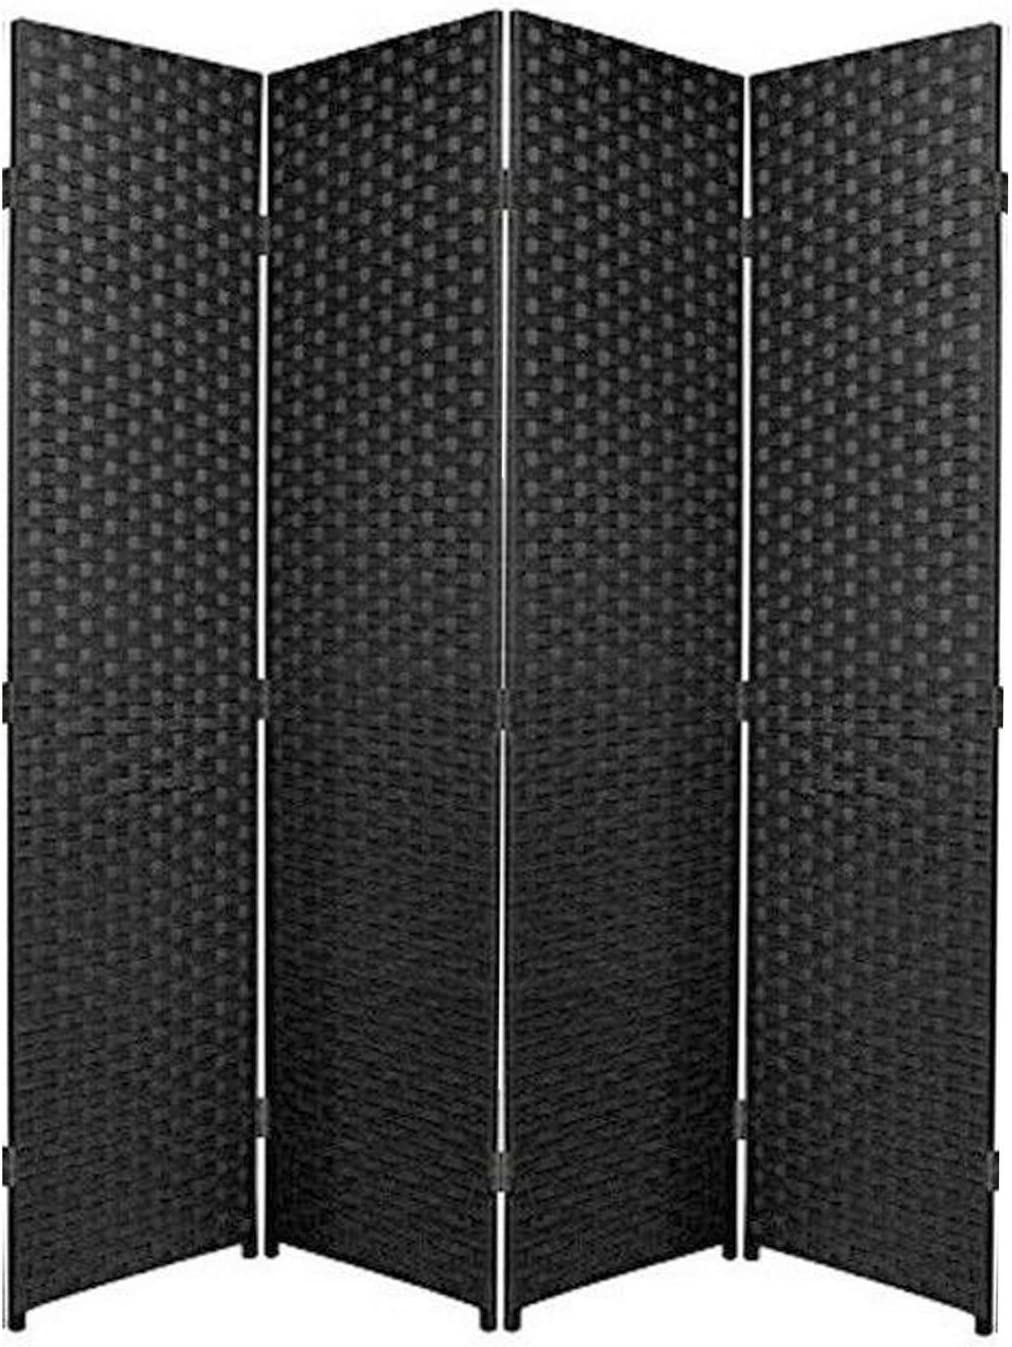 Biombo de rafia ideal para separar ambientes o habitaciones en color negro, haya, 3 Panel: Amazon.es: Hogar